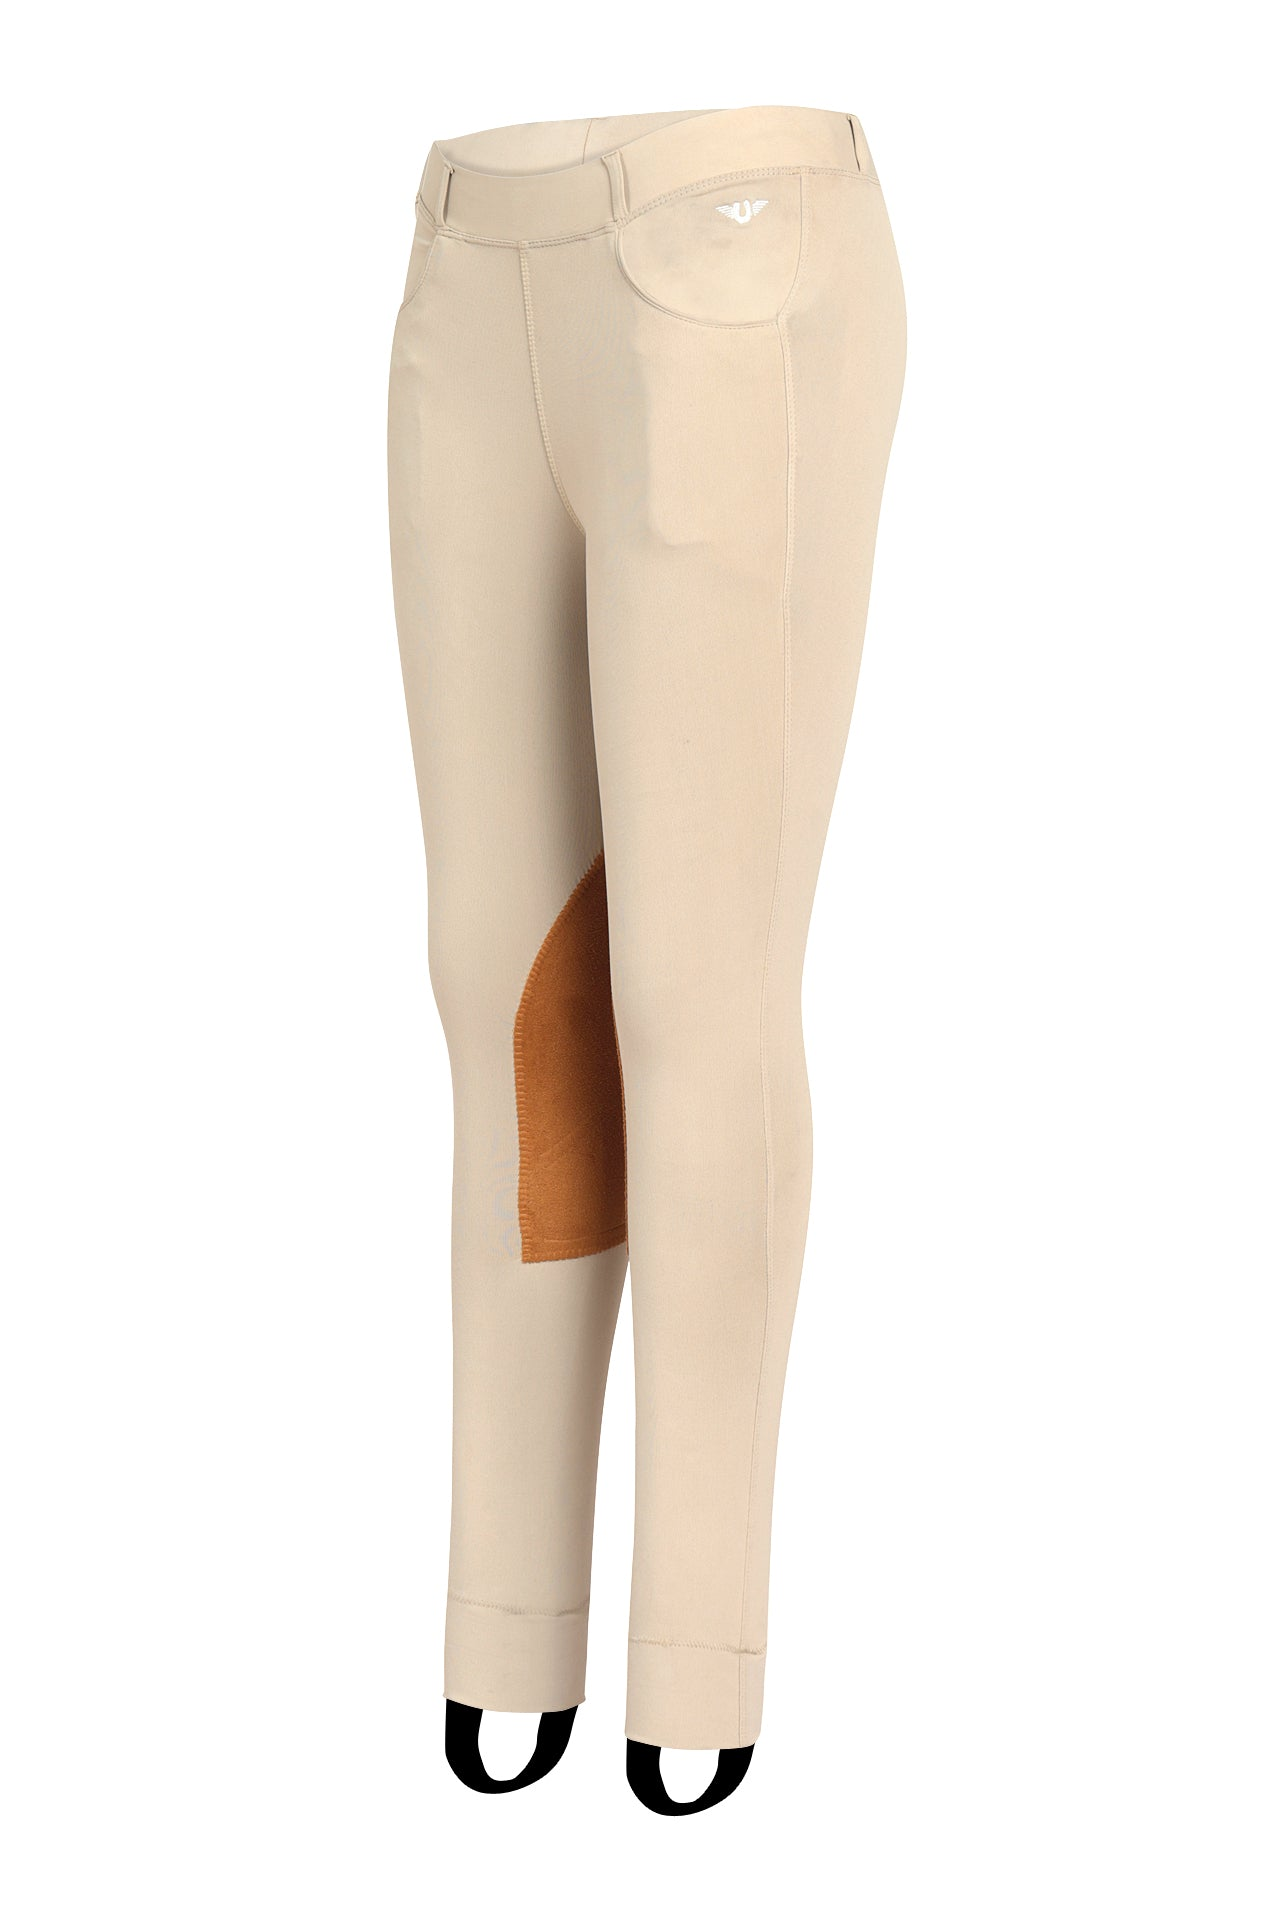 TUFFRIDER CHILDREN'S PRIME JODHPURS WITH BELT LOOPS_5608